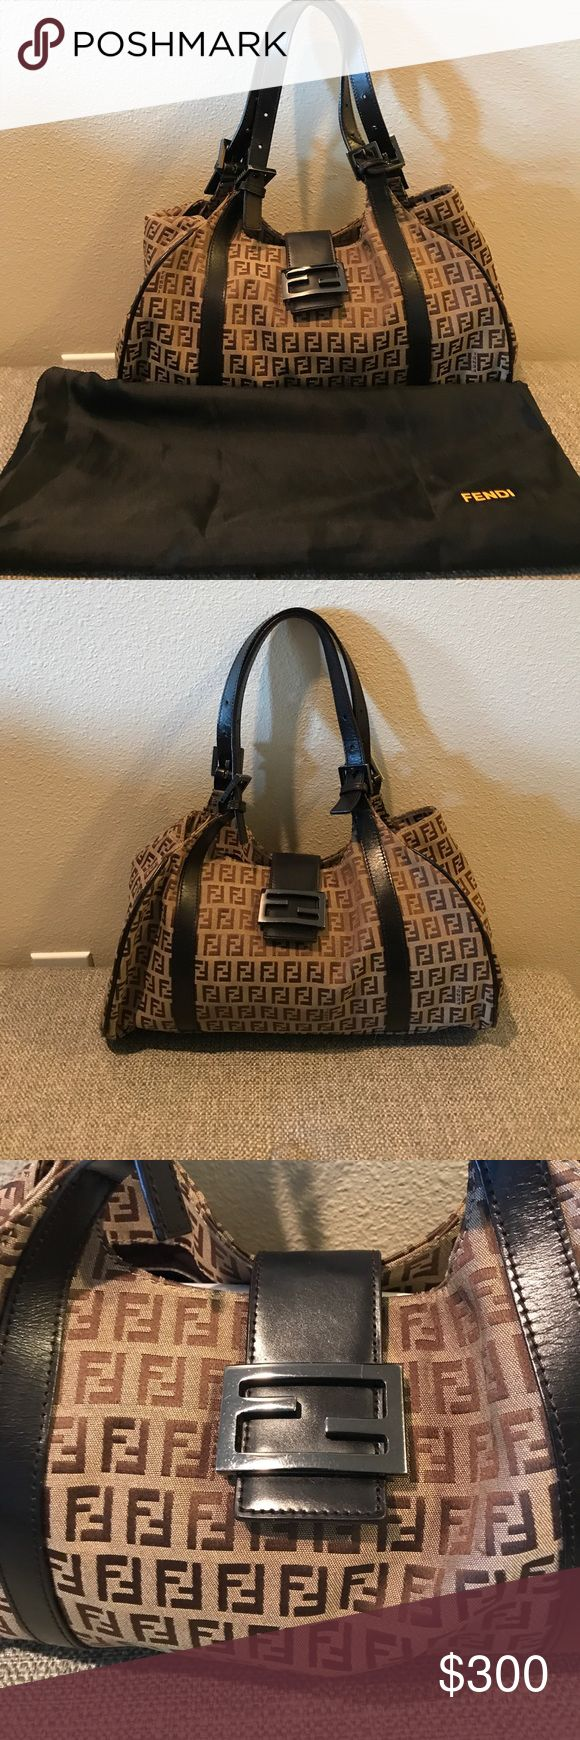 "Fendi ""Zucca"" purse Serious buyers only.💯% Authentic, pre-owned, Fendi Zucca shoulder bag. Hobo satchel leather trim, canvas monogram. Clean, smoke free home, good condition, minimal wear/tear on straps/leather trimming, & hardware (not noticeable). One screw missing from the hardware ( where u close bag) Snaps perfectly fine. Easy repair by placing a screw. Dust bag is included, lost the authenticity card, hologram sticker fell off. Vintage. Willing to lower the price (offer is firm…"